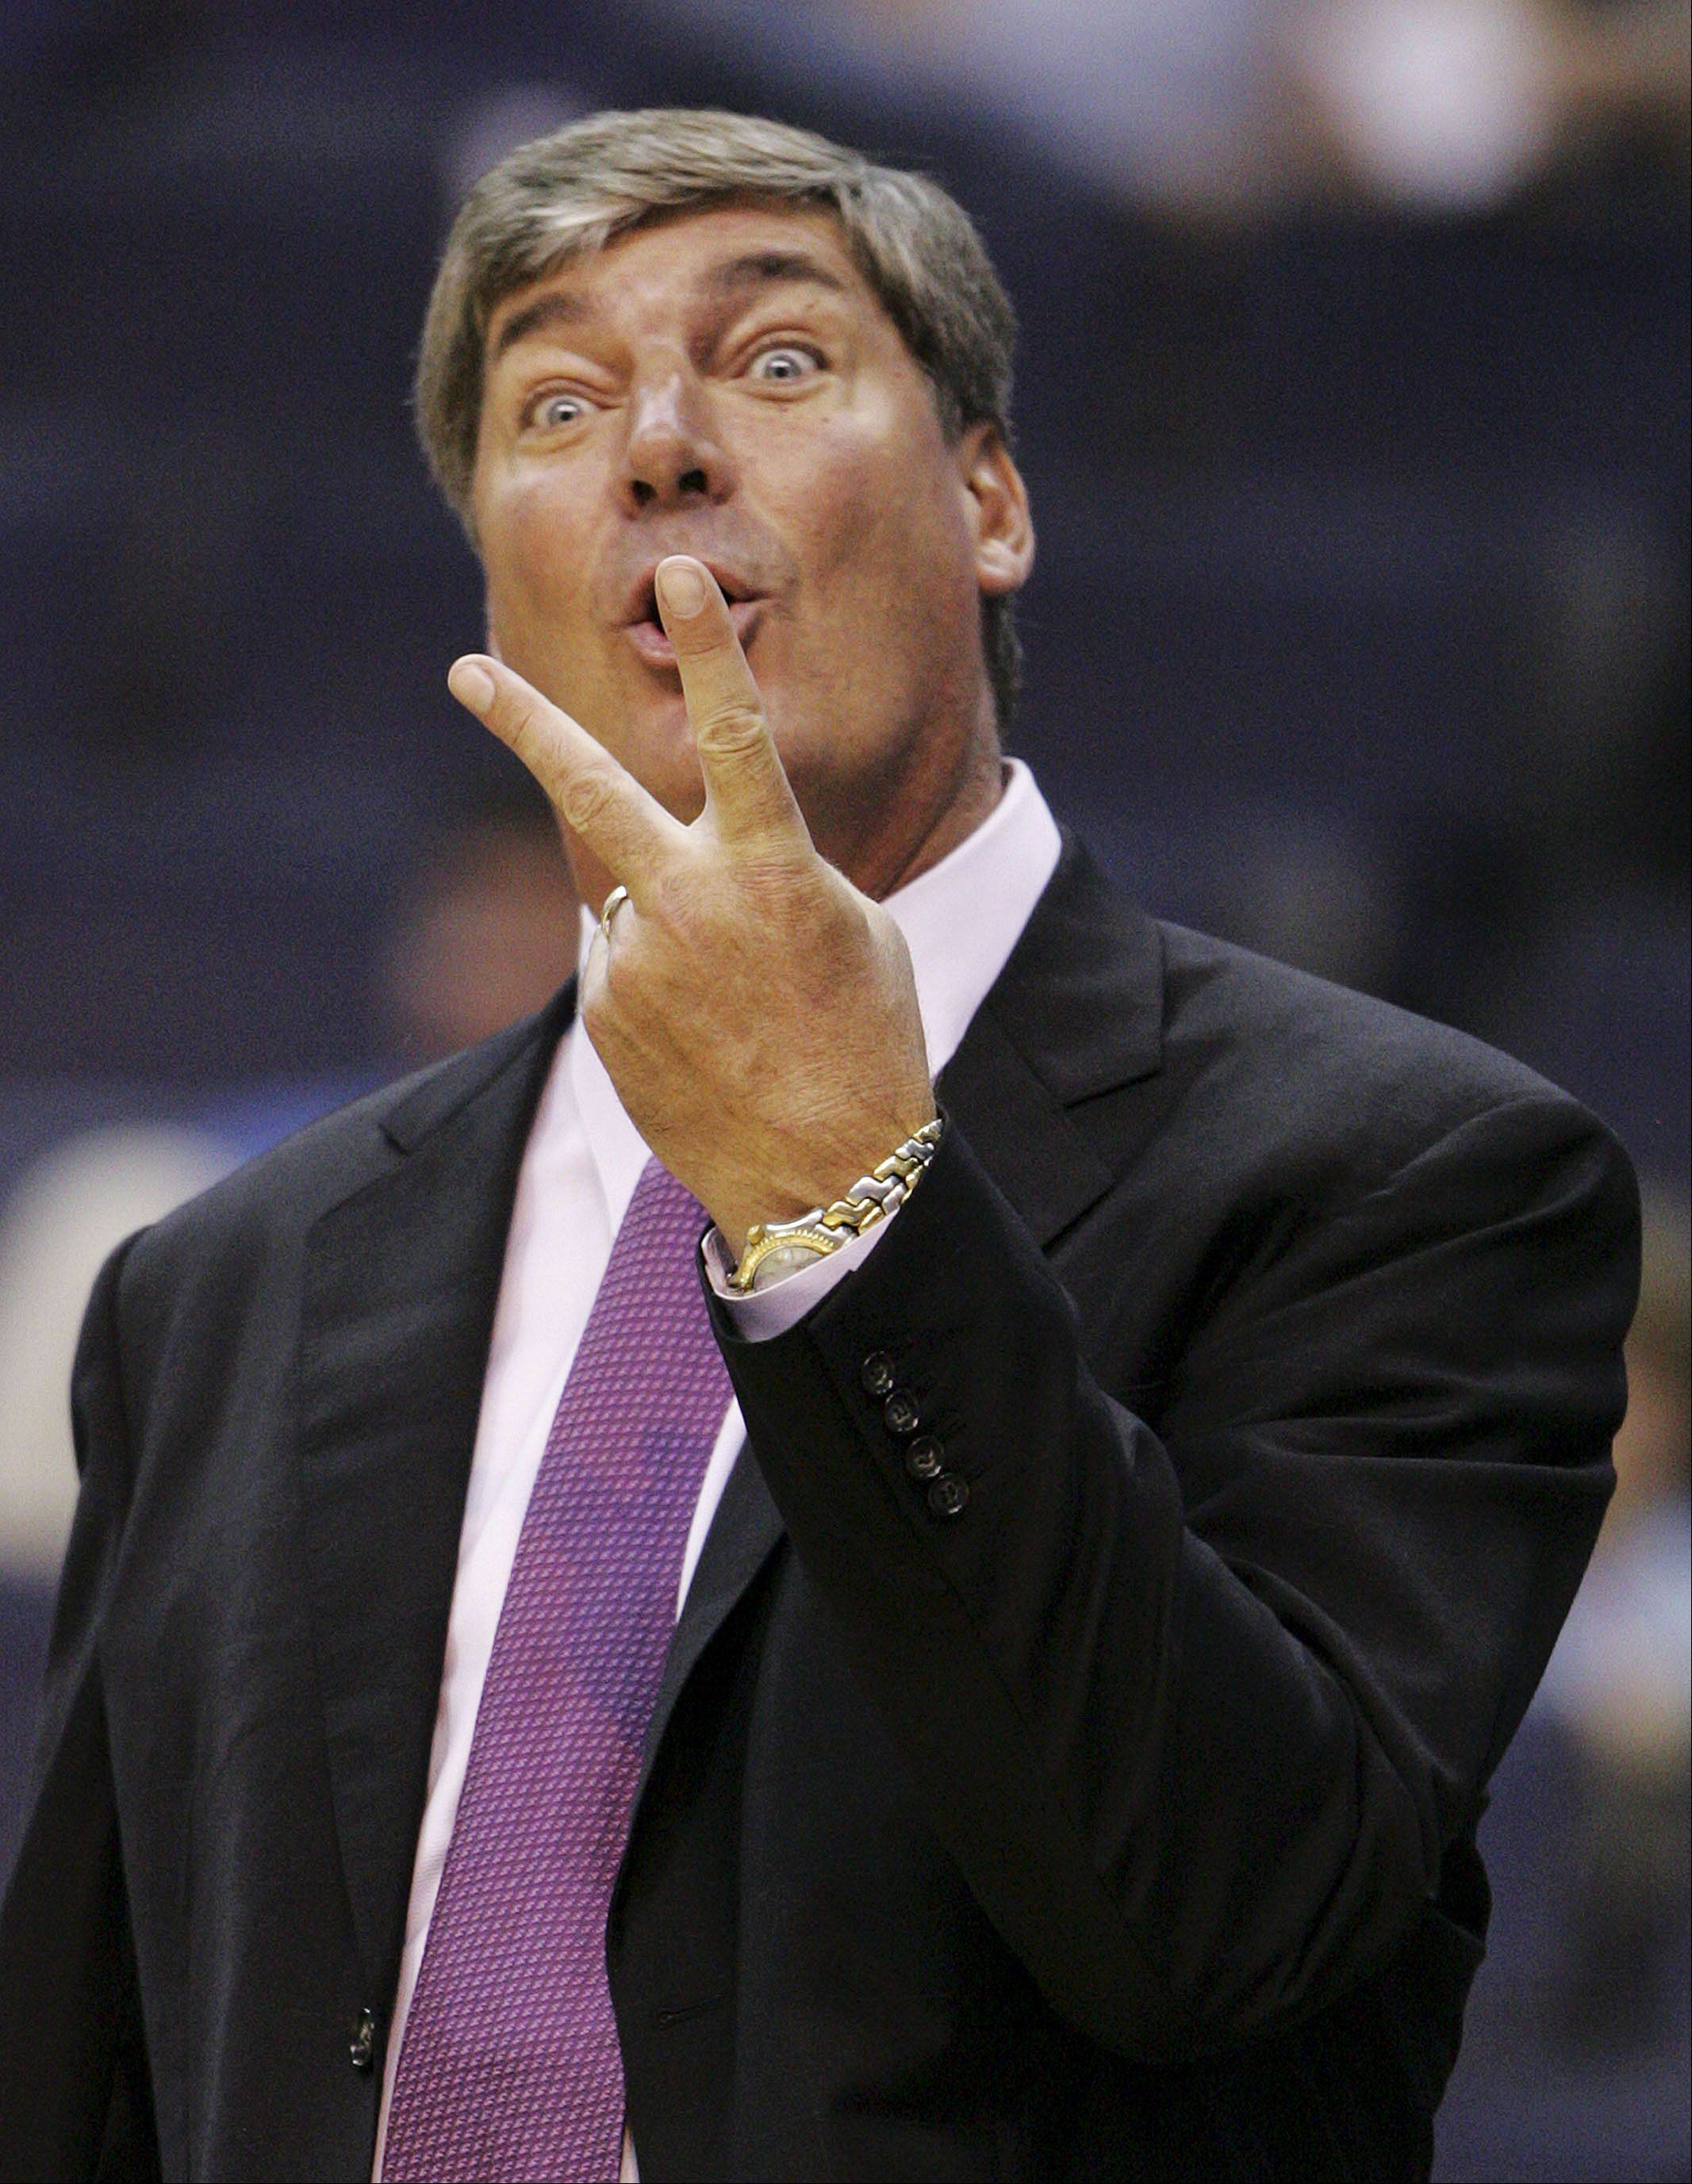 Detroit Shock's head coach Bill Laimbeer reacts after his team was assessed separate technical fouls during the first quarter of a WNBA basketball game against the Washington Mystics, Friday, July 18, 2008, in Washington.